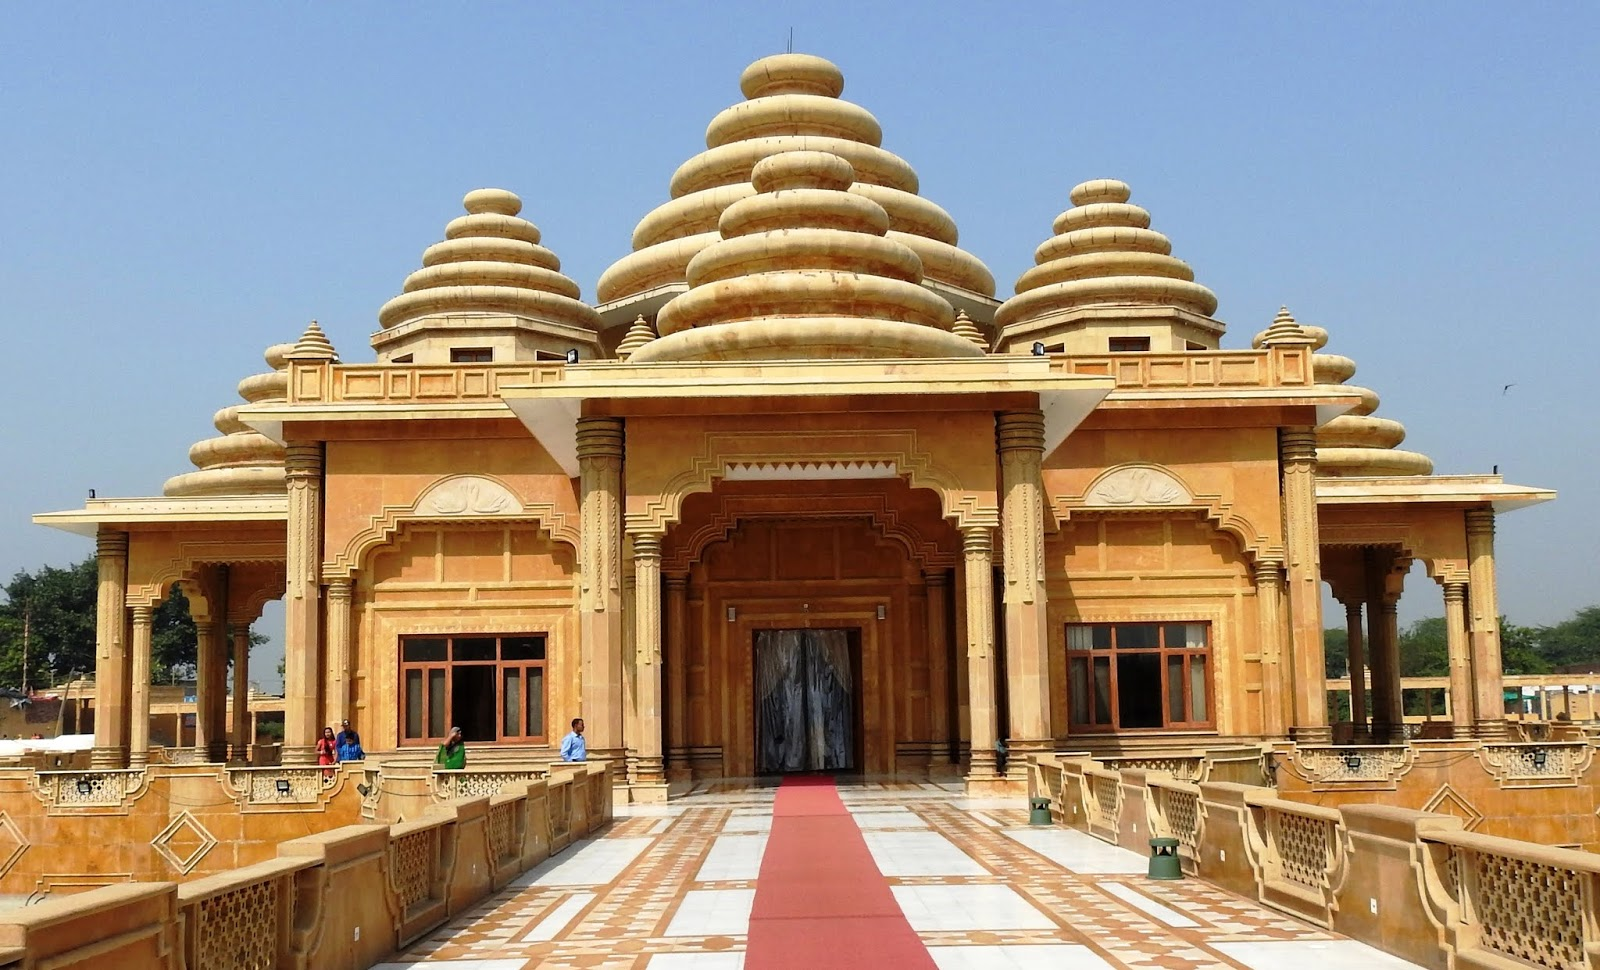 Define Diwani Rights Valmiki Tirtha A Site In Punjab Where The Ramayana Was Composed